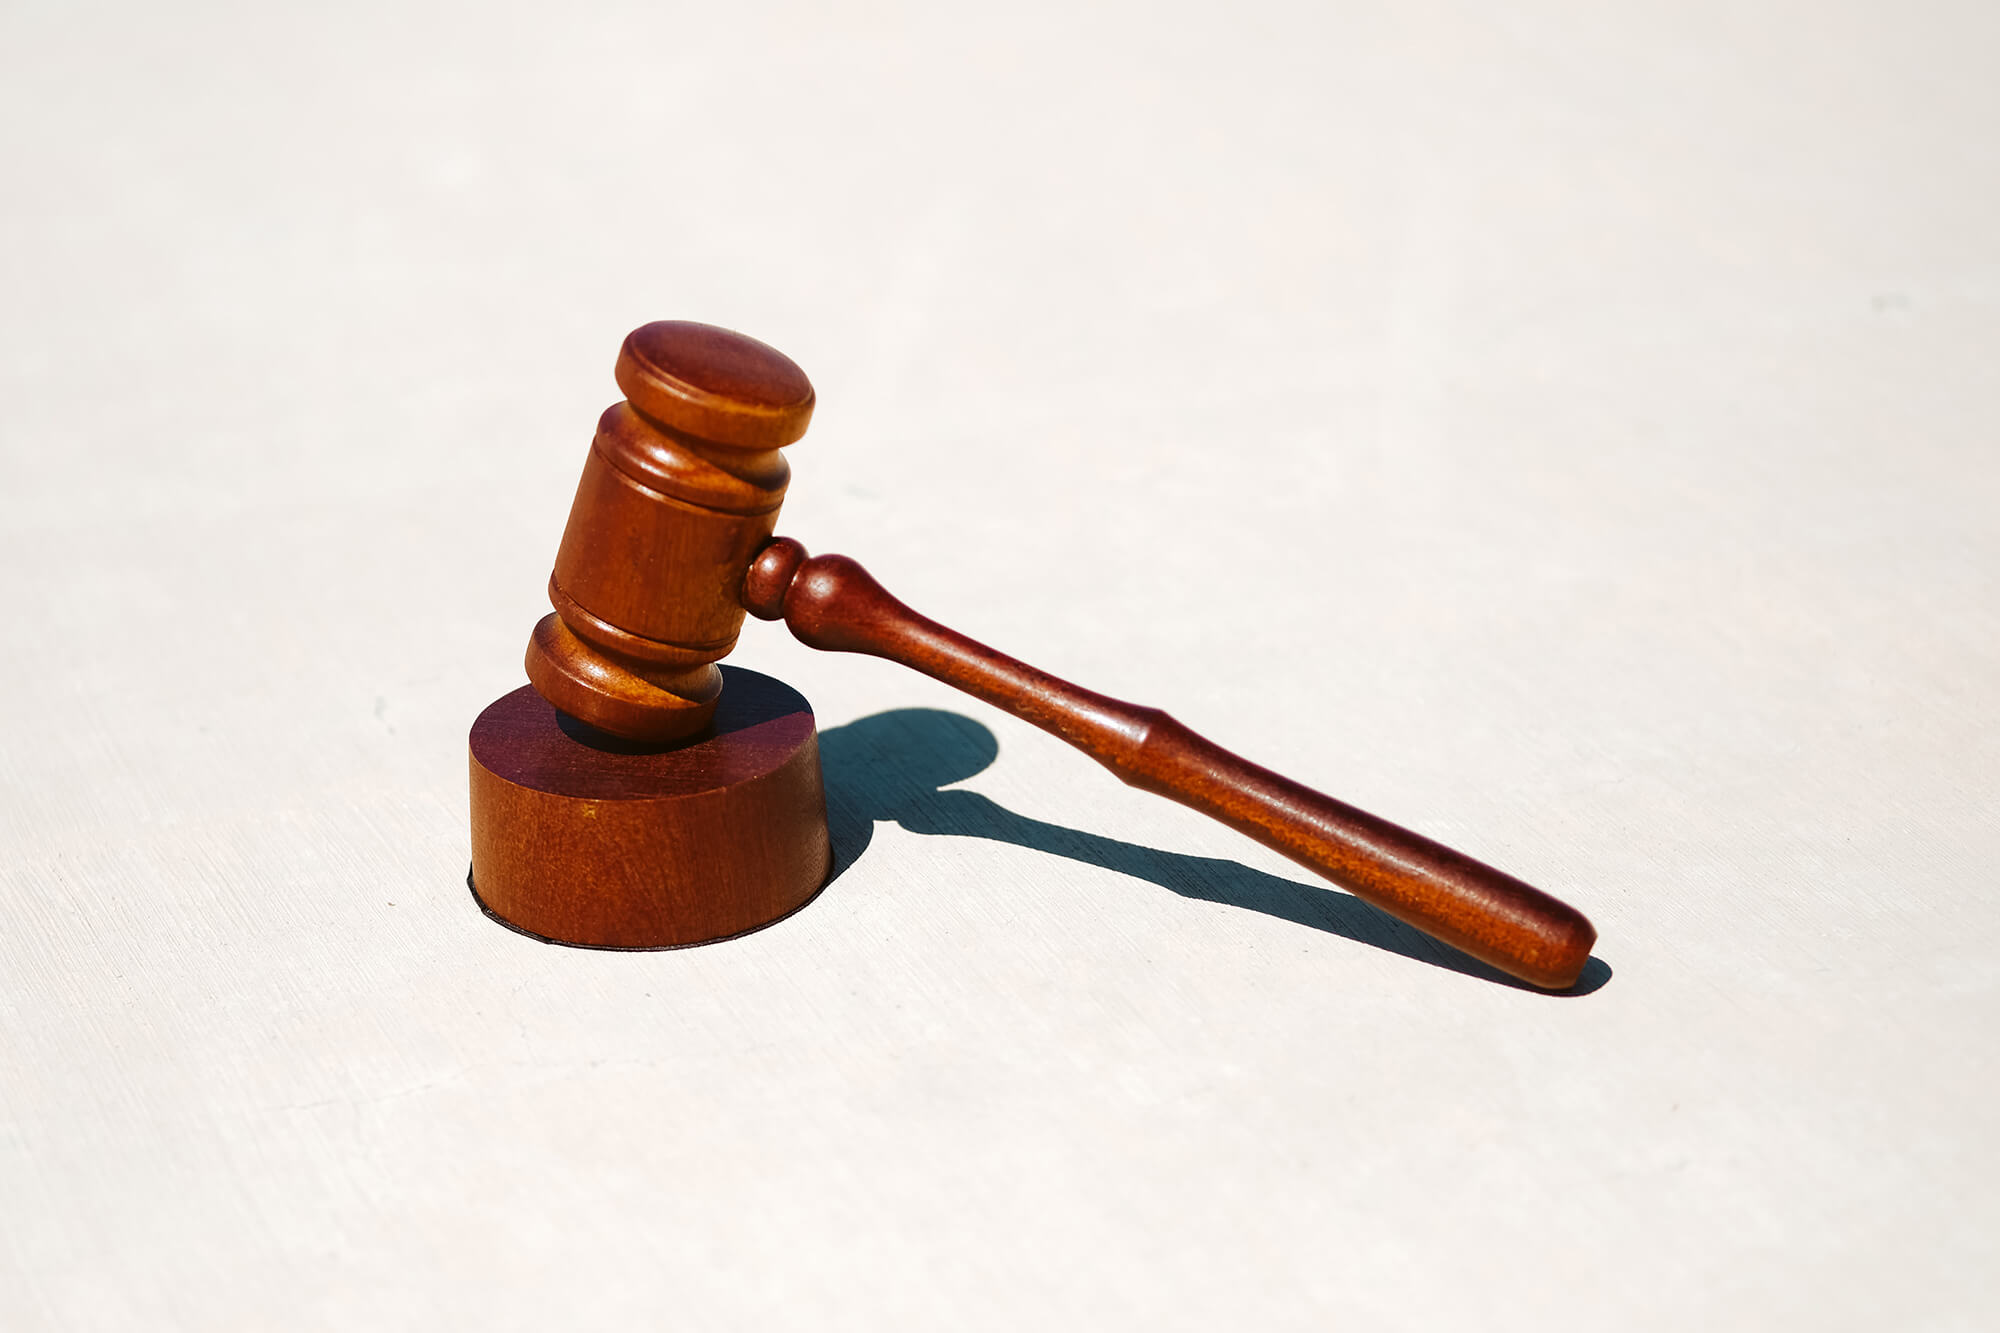 A photo of a wood gavel against a white background.